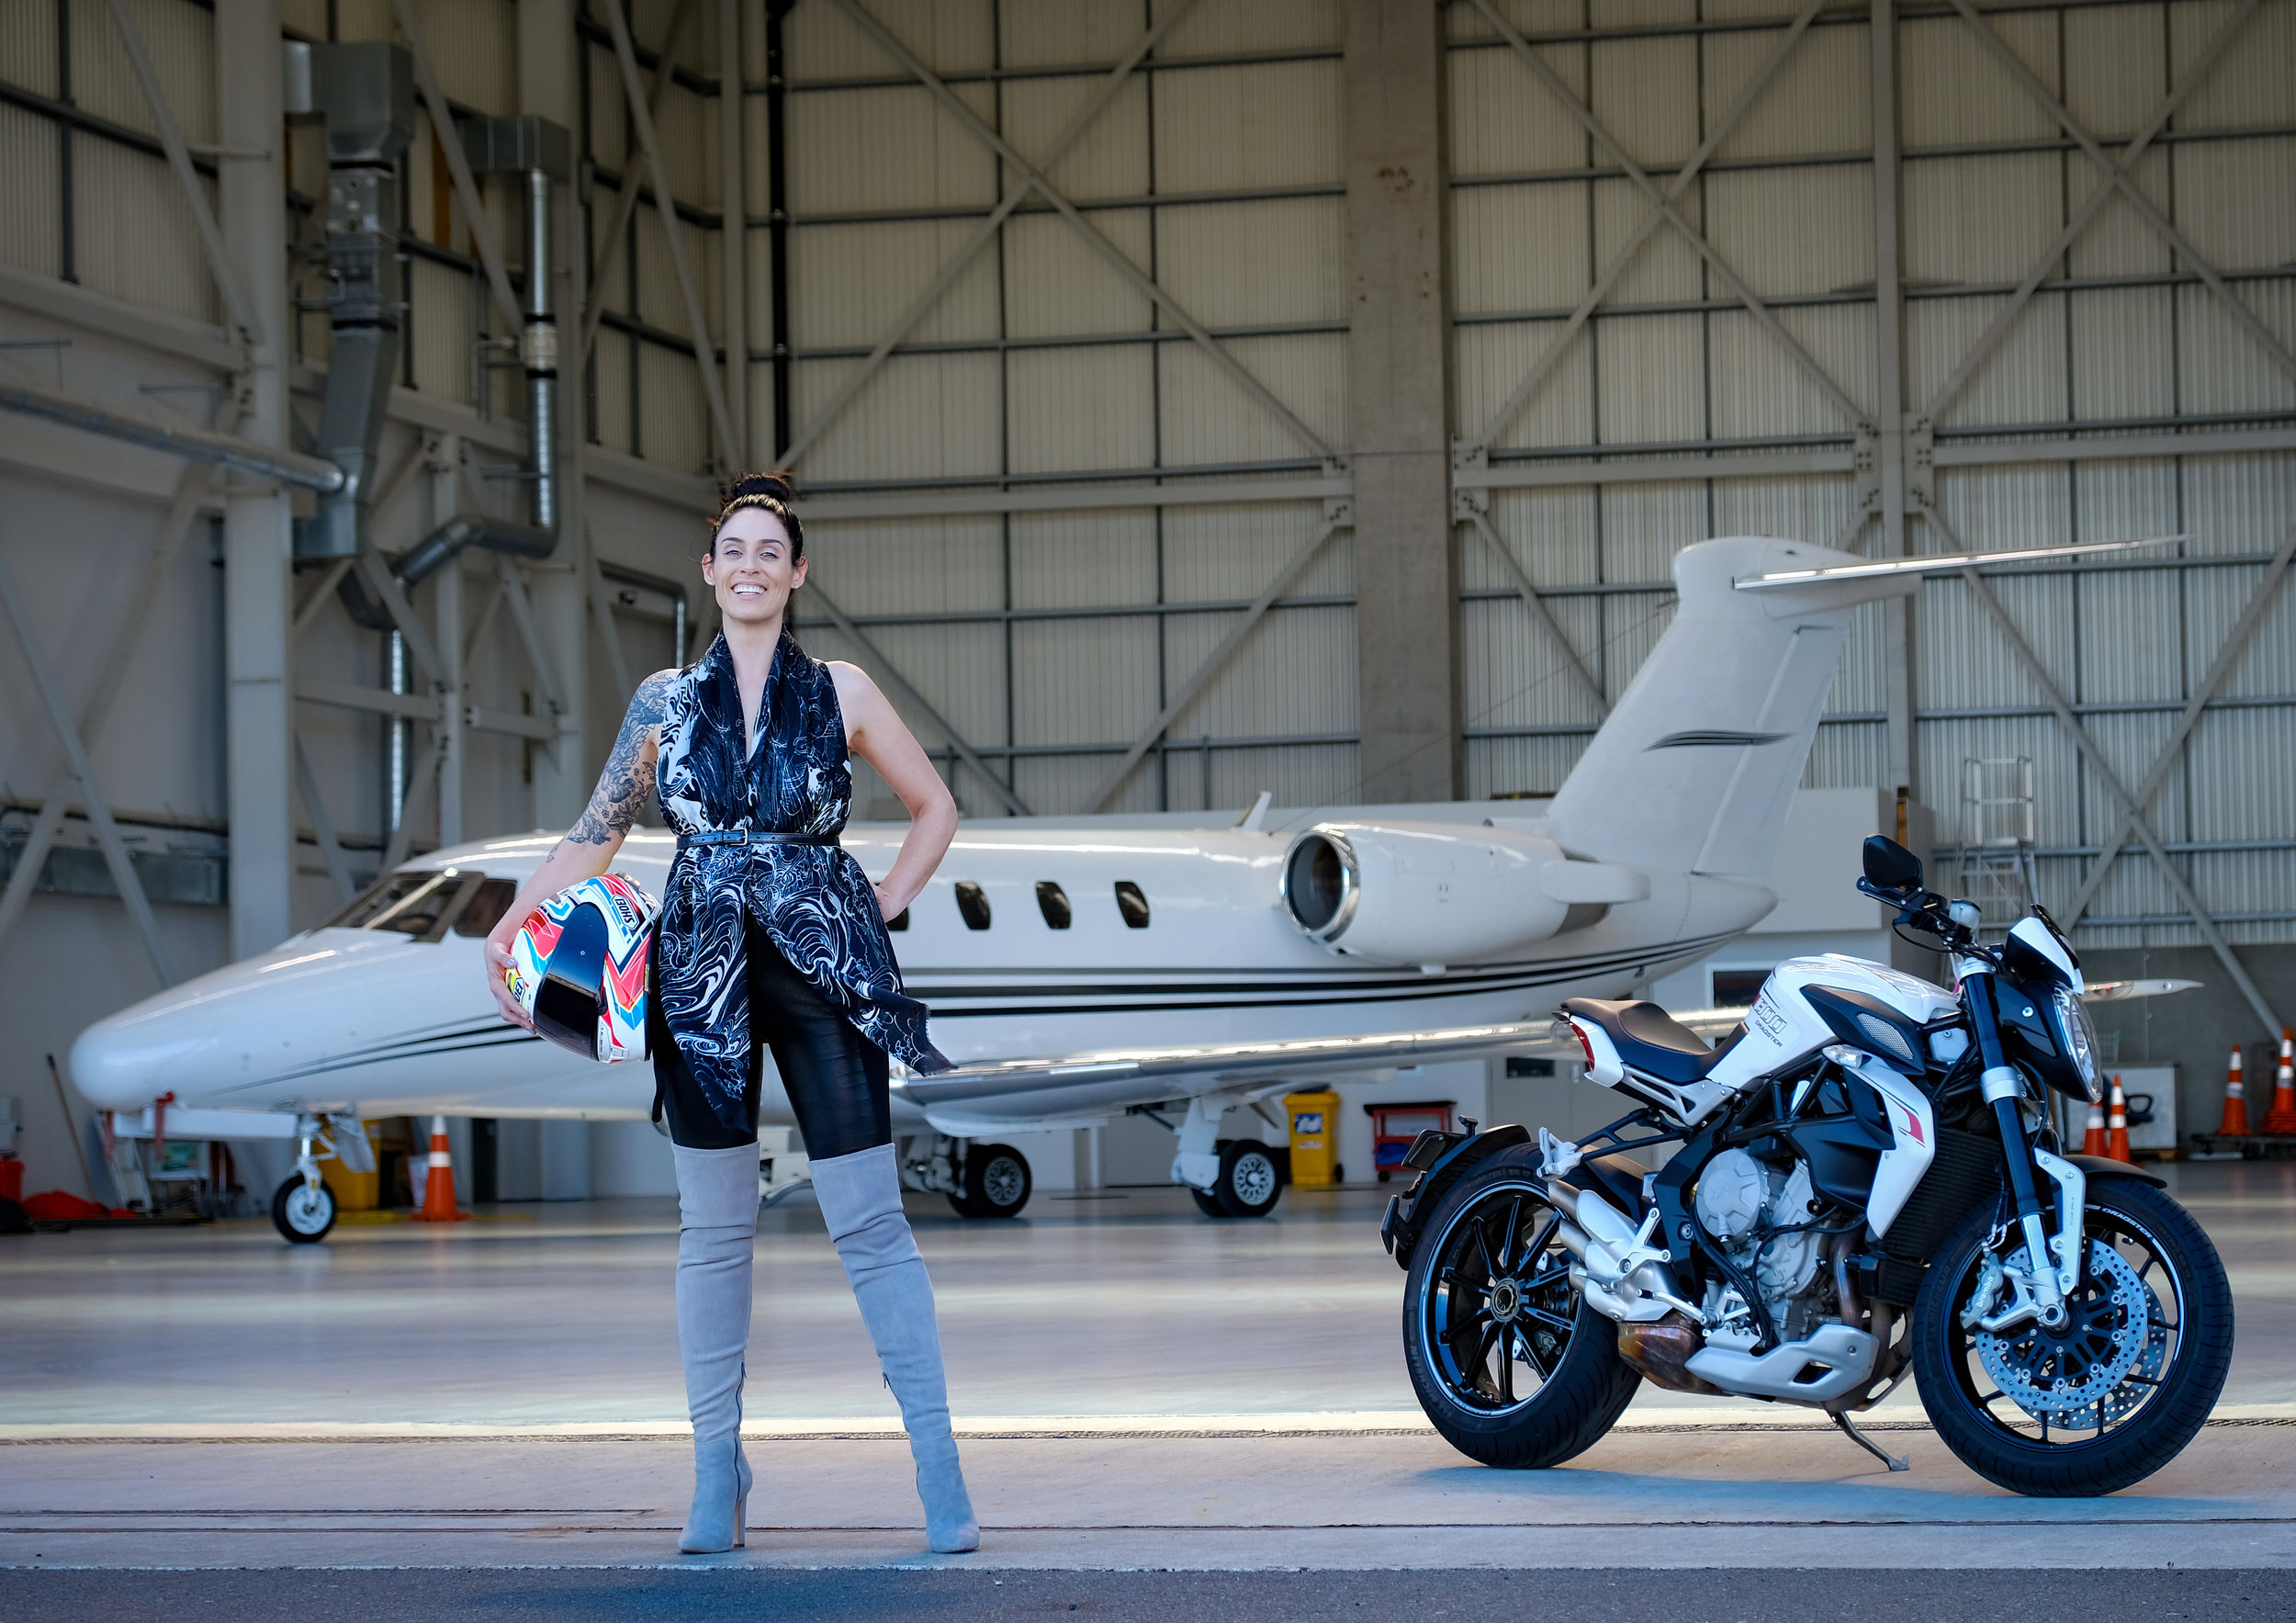 Moena Moxham wears 'Metamorphosis' as a top next to two of her two greatest passions; flying and motorbiking. This is her MV Agusta Brutale Dragster RR and she is working towards her pilots licence.